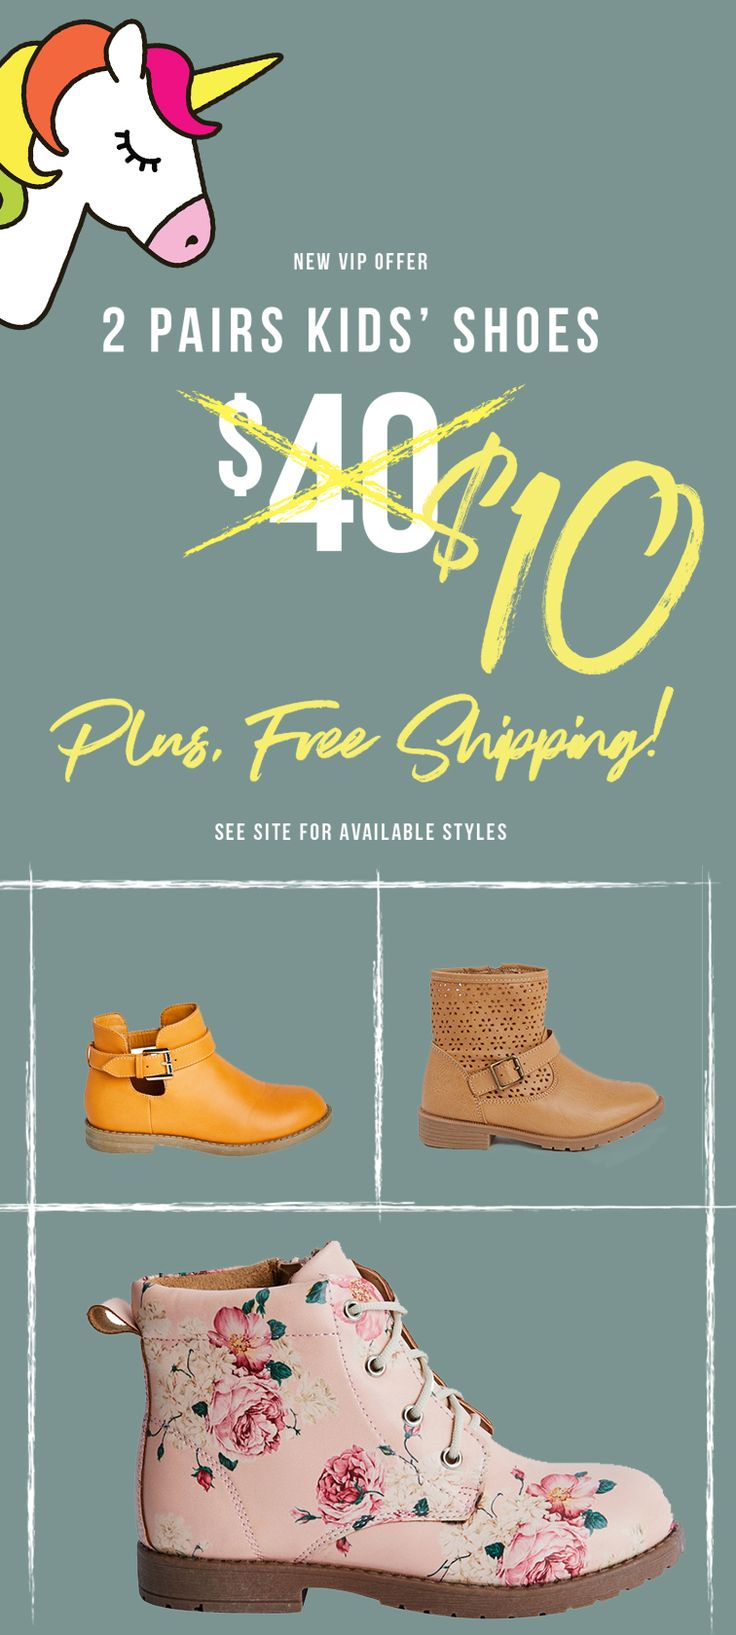 Shop the Best Fall Styles from head-to-toe at Fabkids.com! New VIP Offer: Buy 2 Pairs for Only $10 + Free Shipping! Limited Time Only.